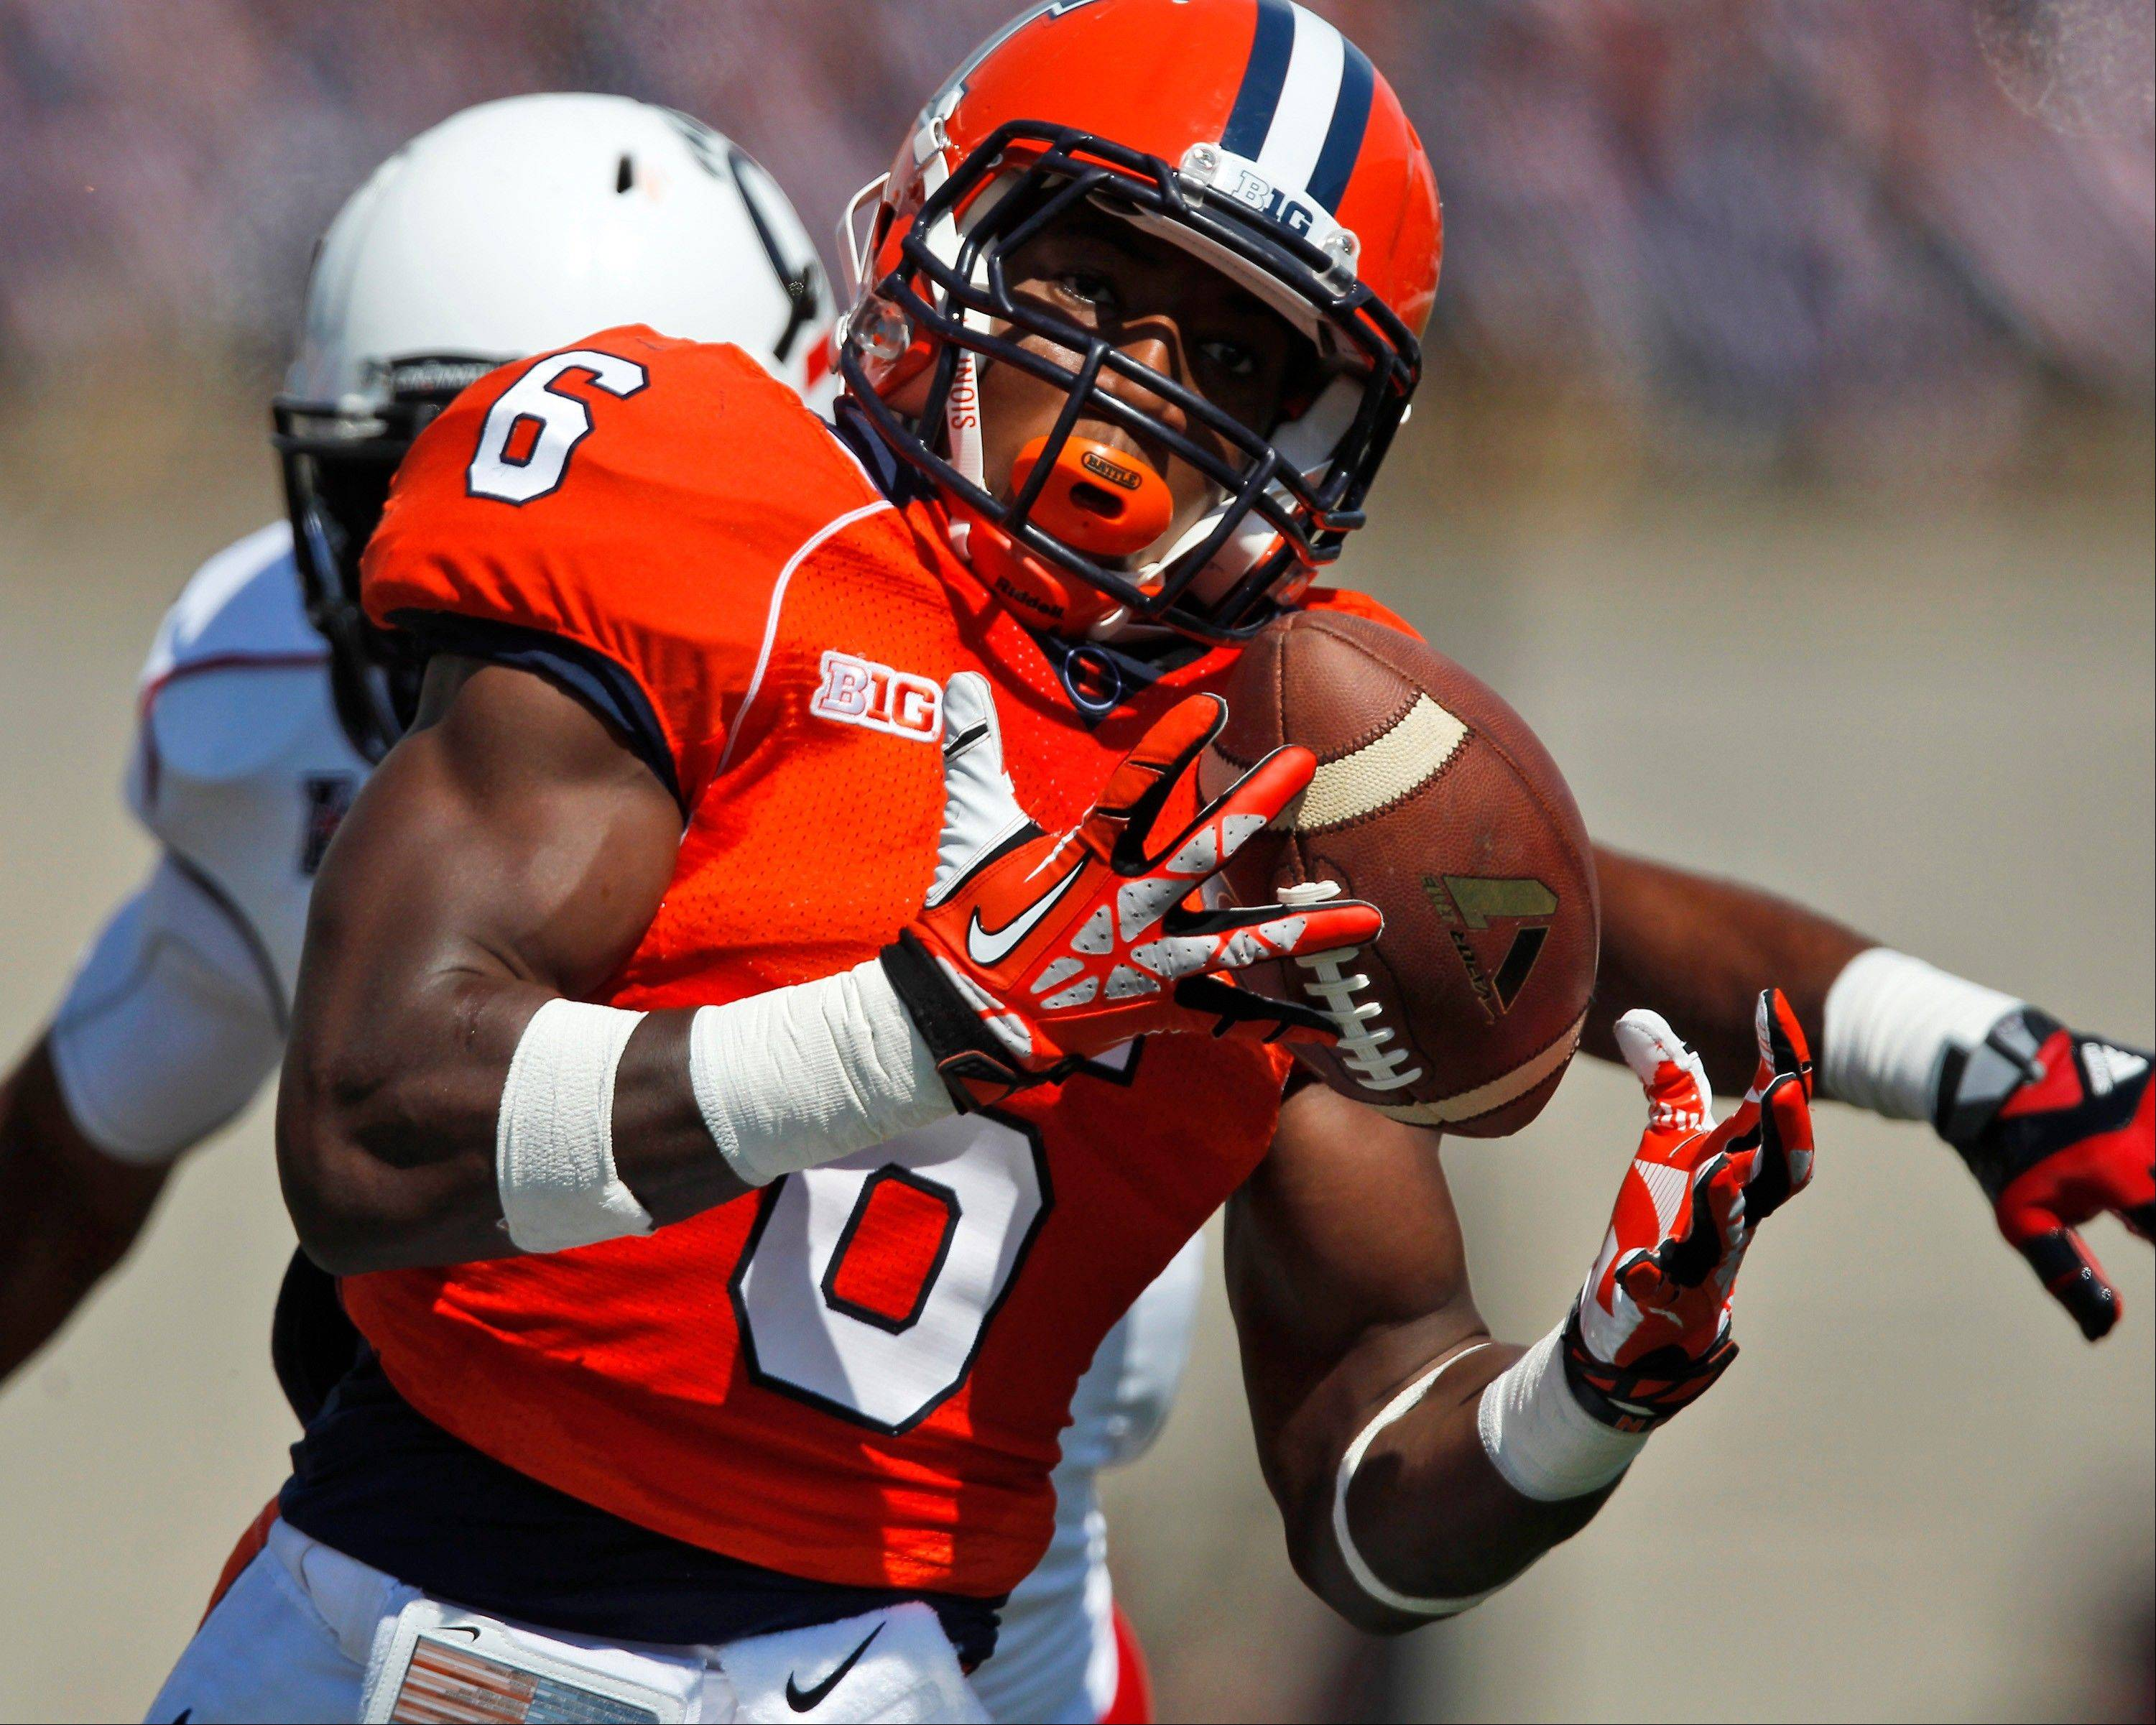 Illinois running back Josh Ferguson catches a pass before running in for a touchdown during the first half of Saturday's home win over Cincinnati.